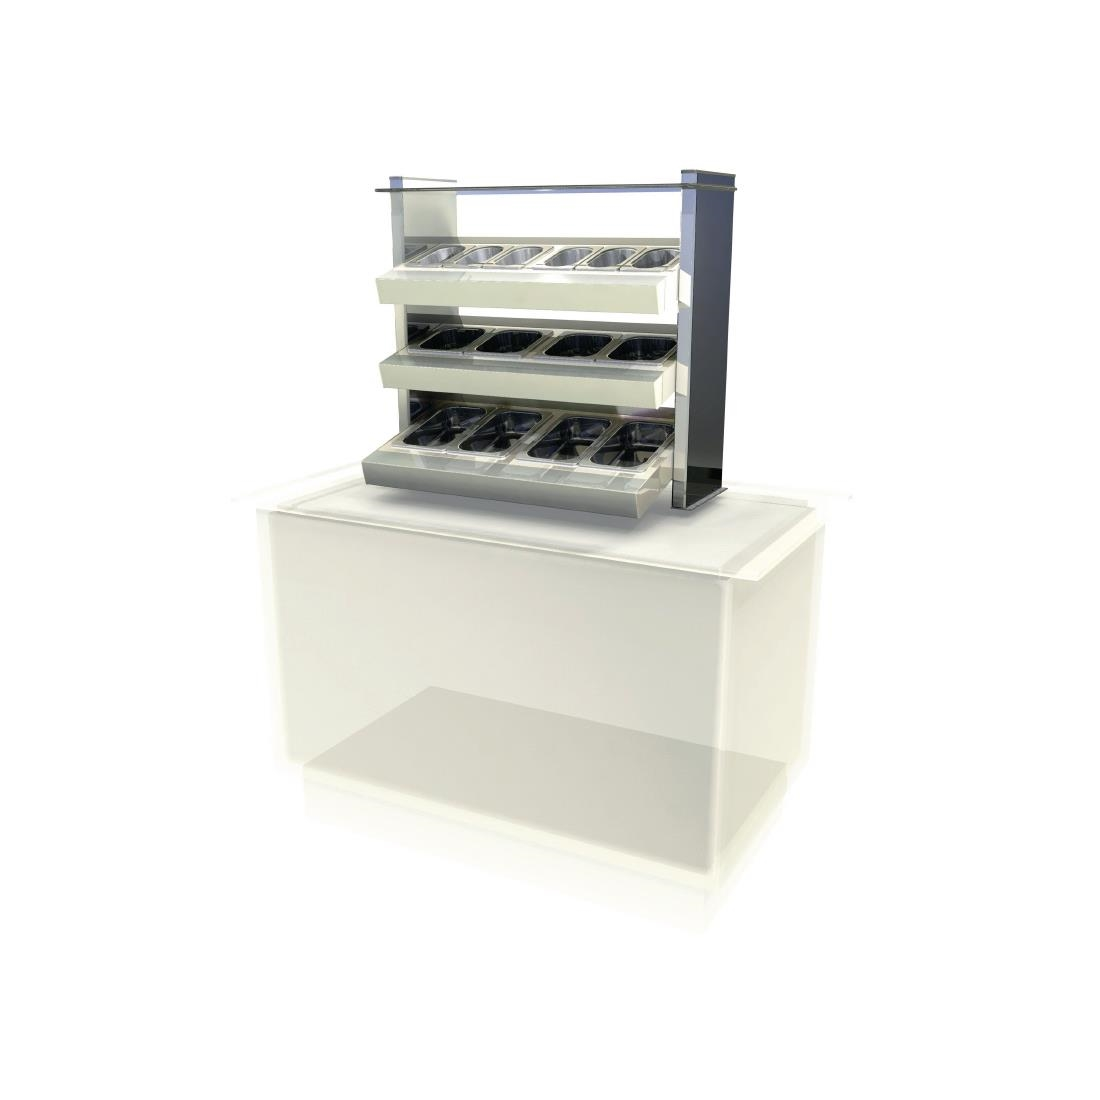 Kubus Drop In Ambient Cutlery/Condiment Unit KCCU2